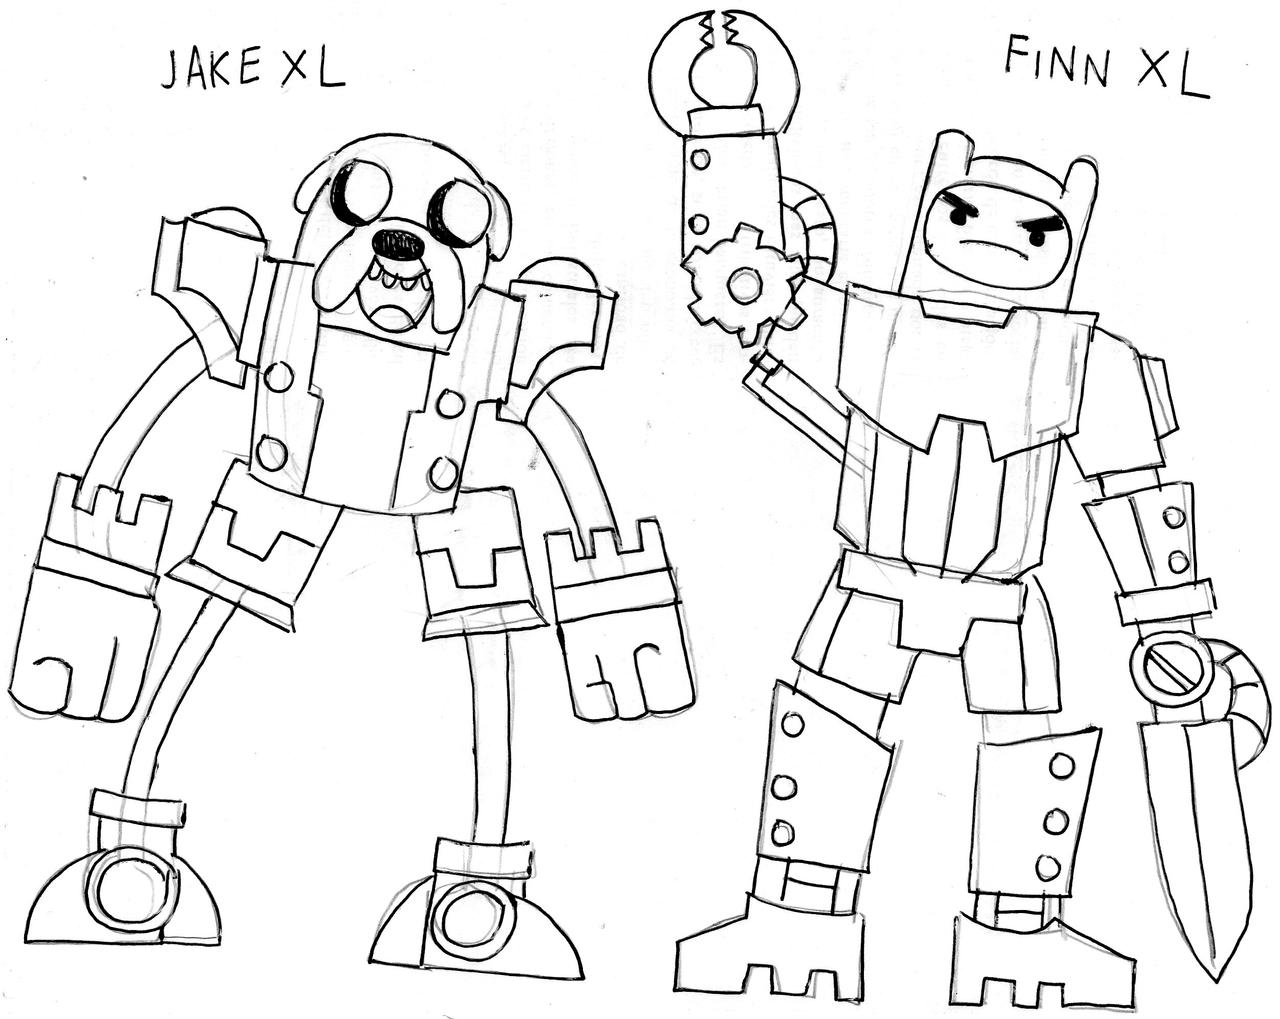 Finn y jake xl by vahi125 on deviantart for Finn and jake coloring pages